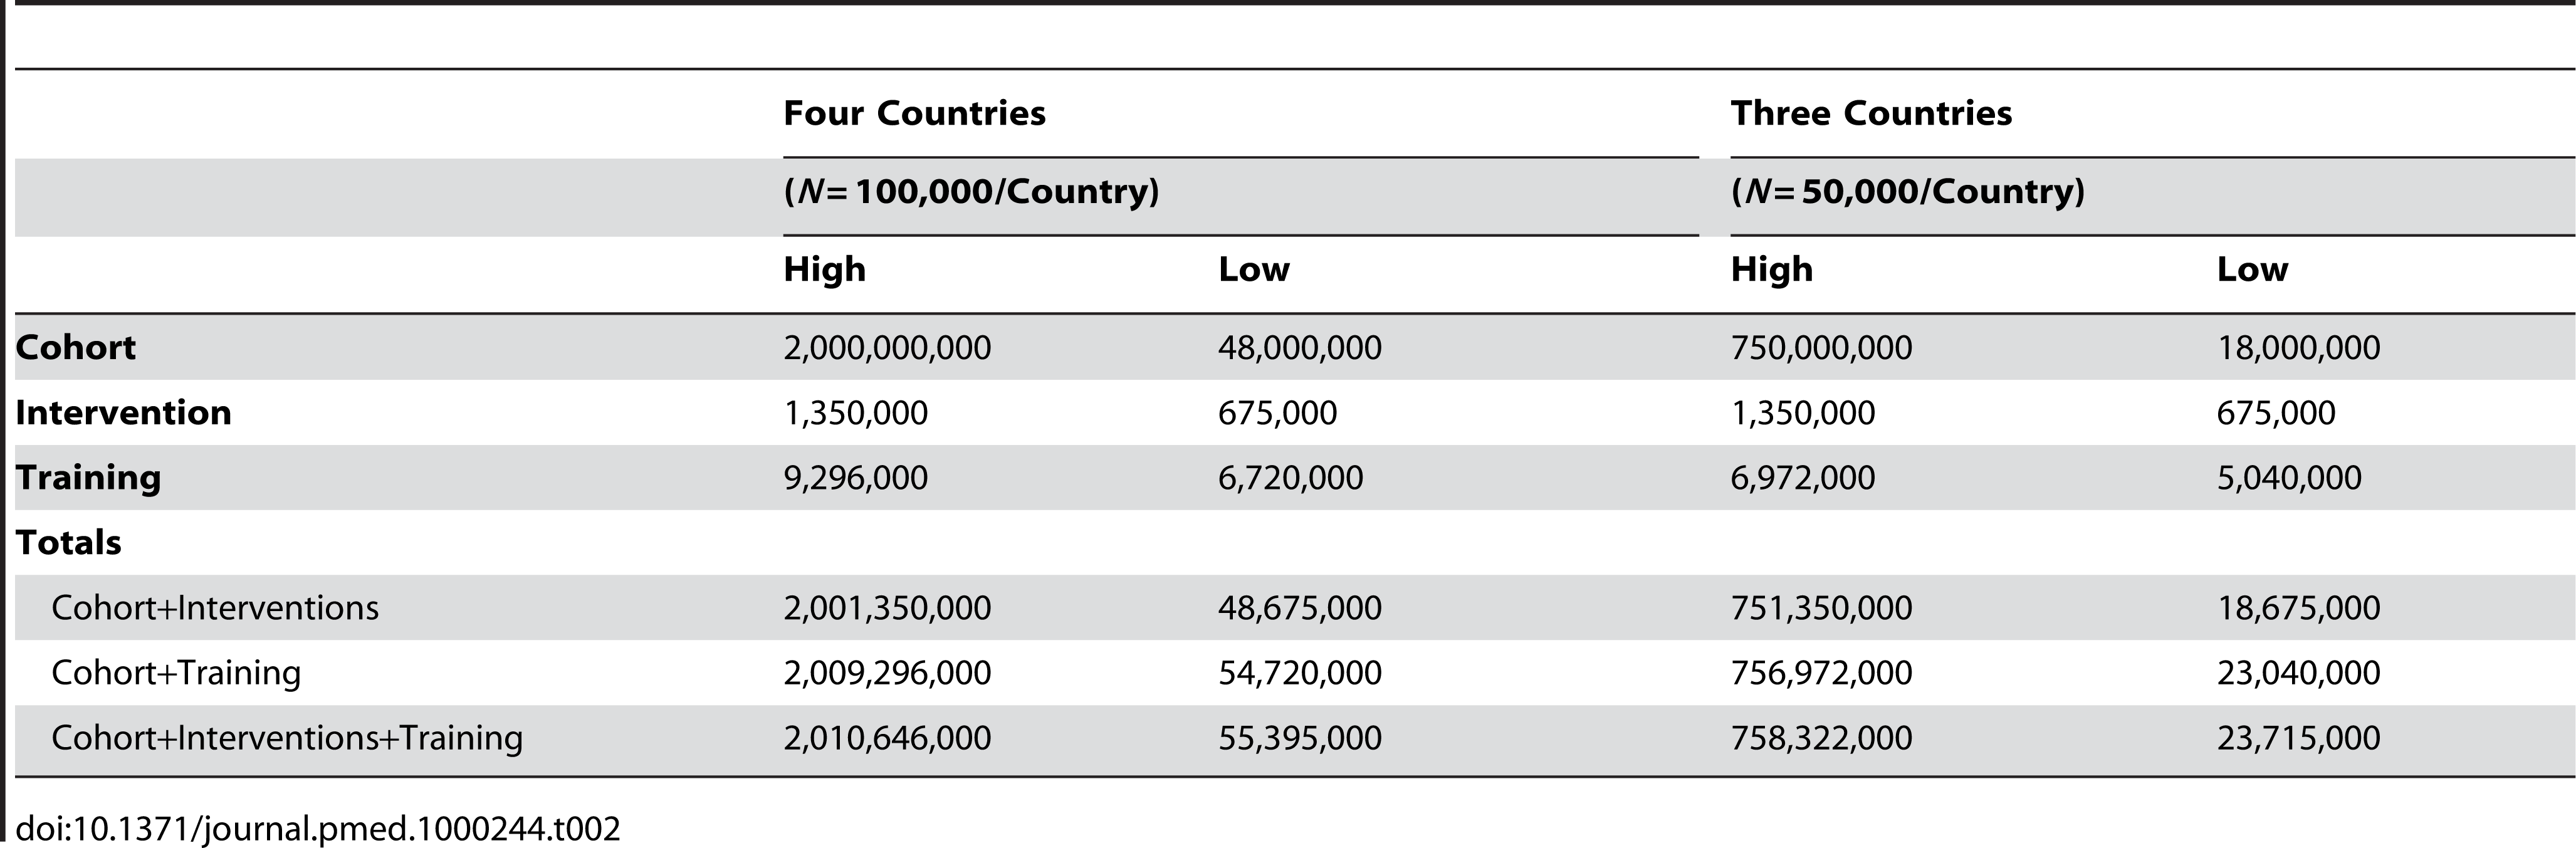 African Cohort Initiative named PaCT (Partnership for Cohort Research and Training) – Estimation of range of costs for two scenarios.